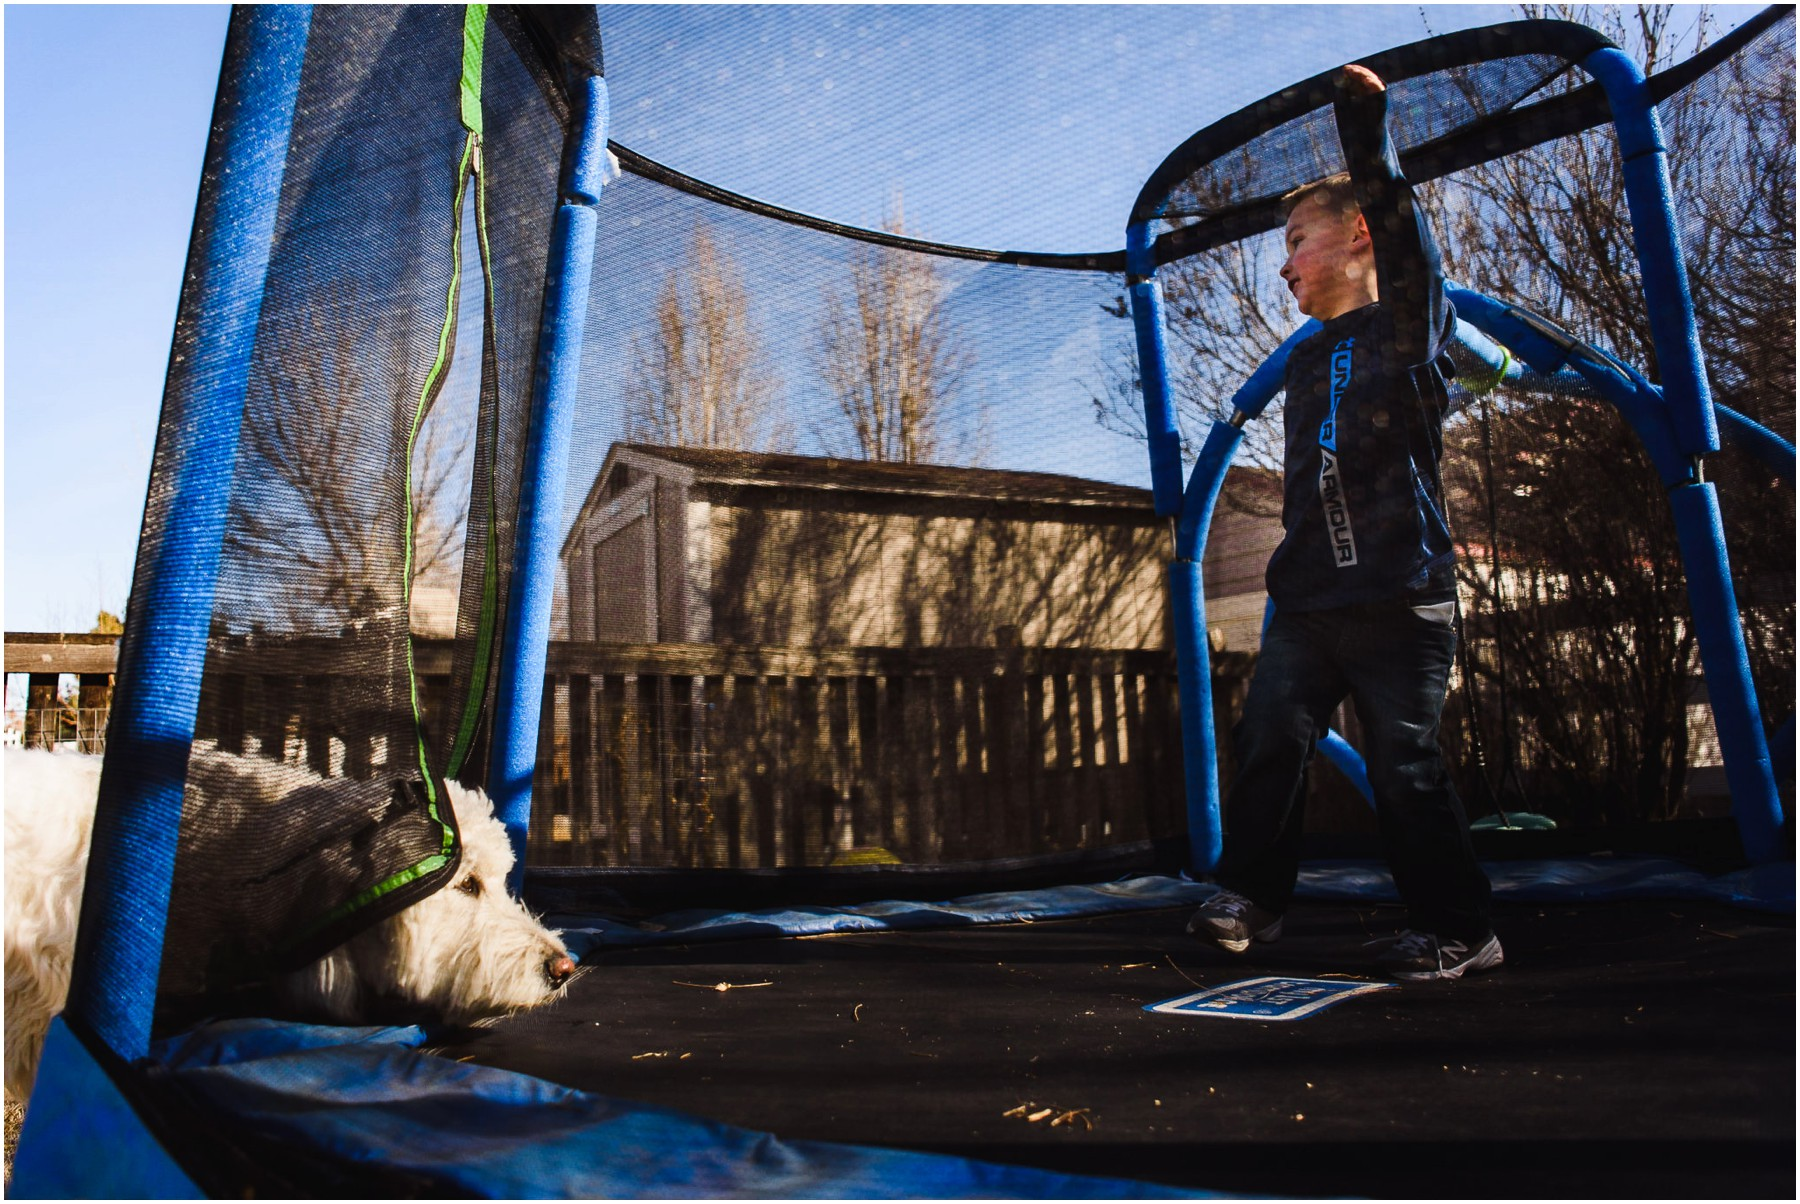 Goldendoodle and child on trampoline